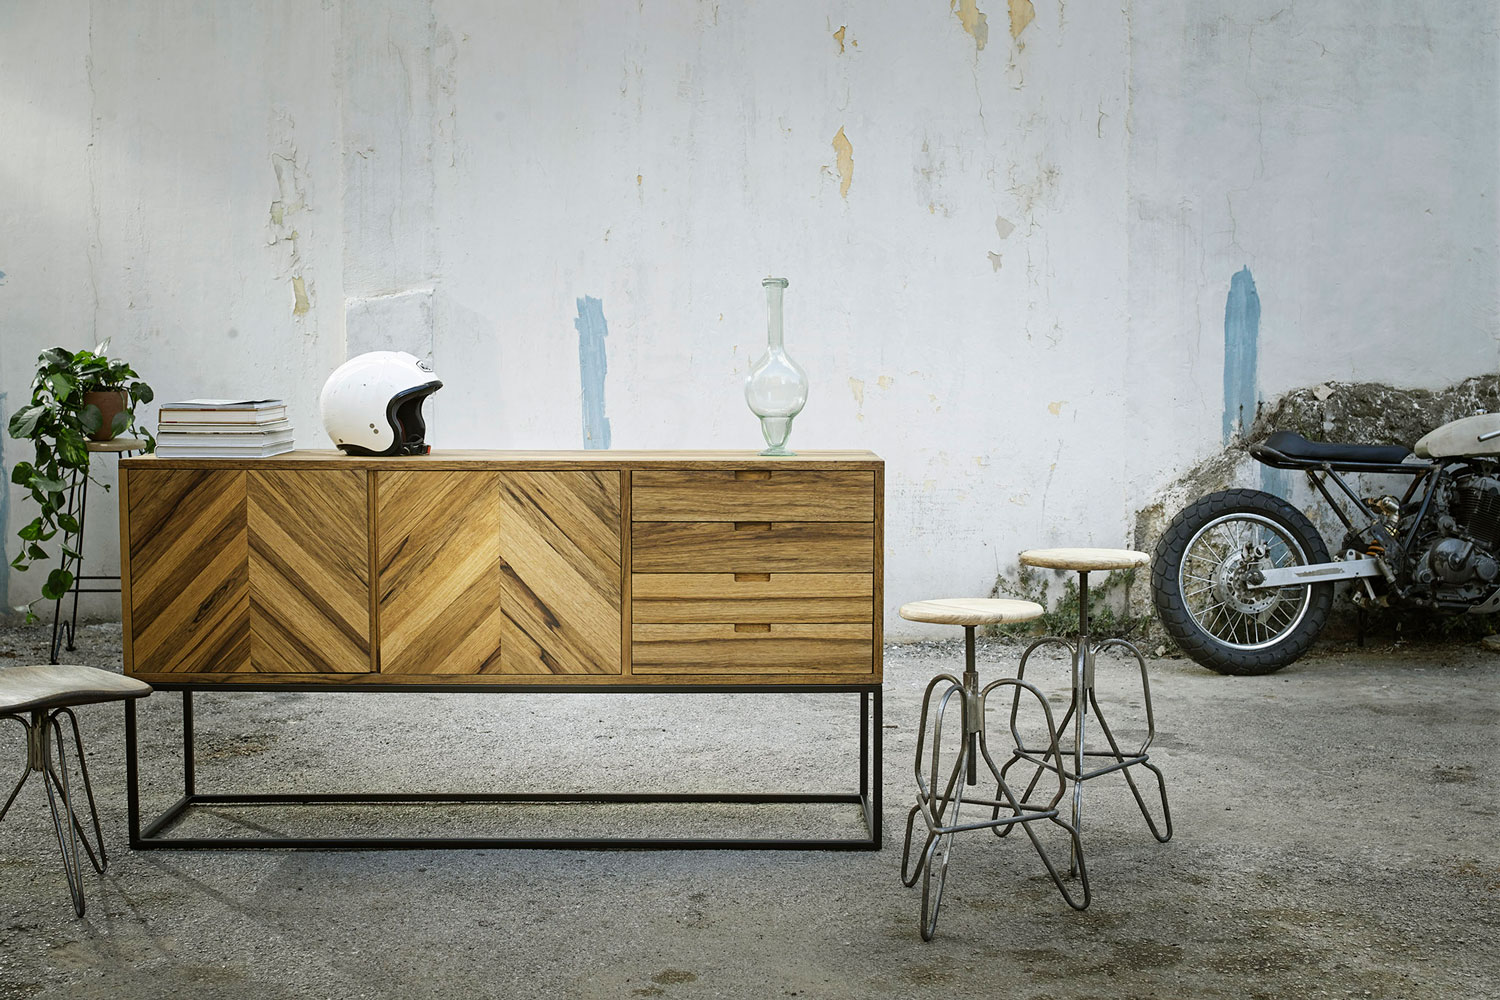 metal-and-wood-adjustable-rig-stool-chair-credenza-sideboard-lookbook-1.jpg